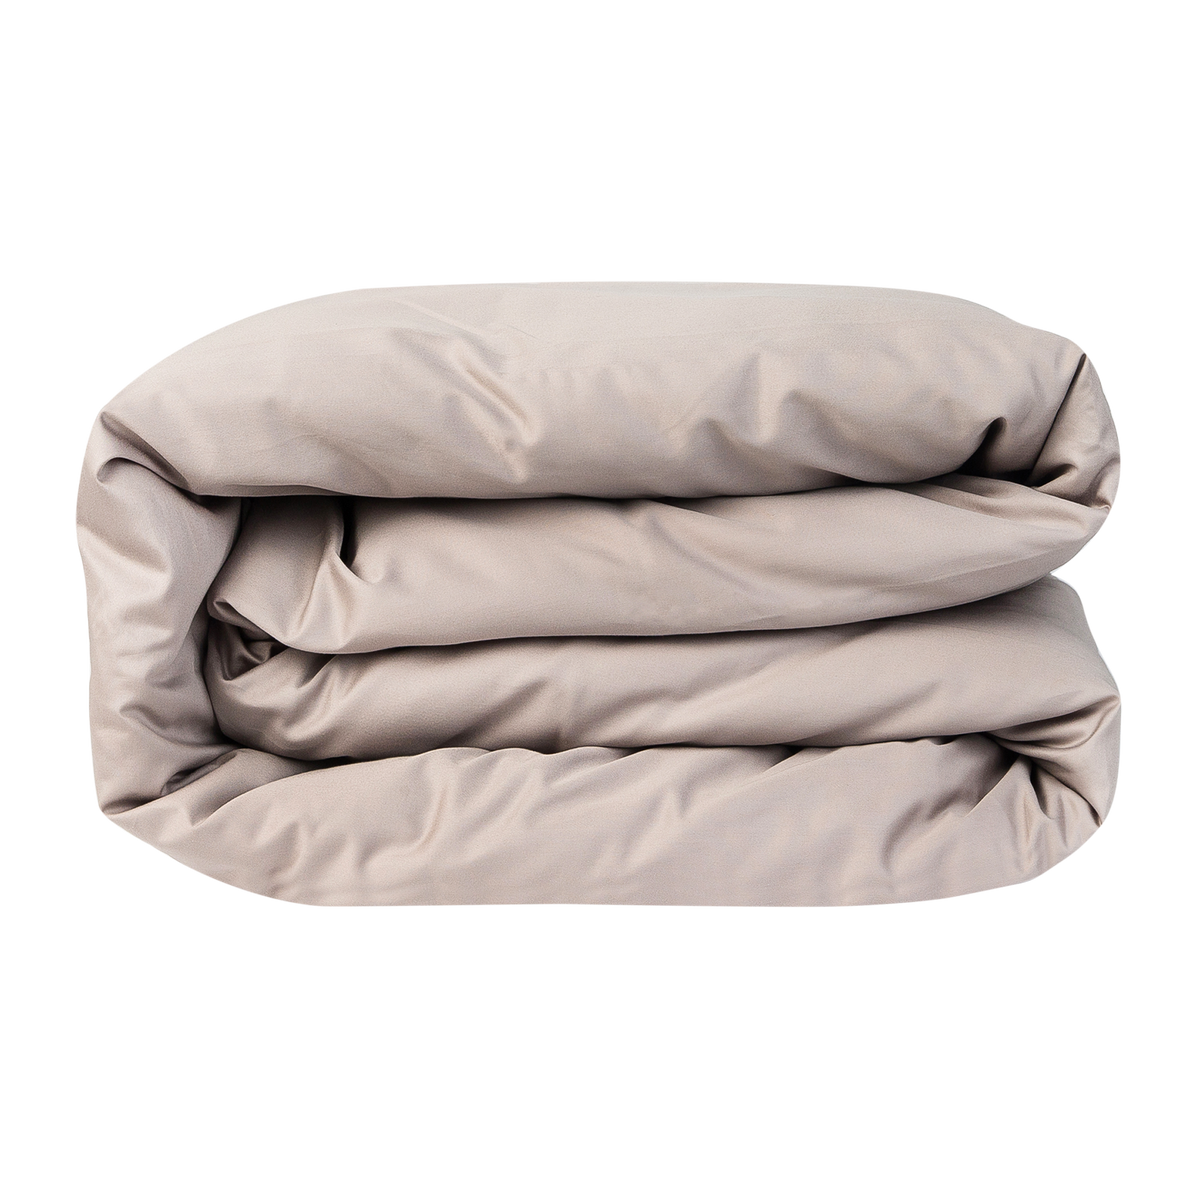 Refined Collection 100% Egyptian Cotton Sateen Duvet Cover in Warm Grey | Skylark+Owl Linen Co.